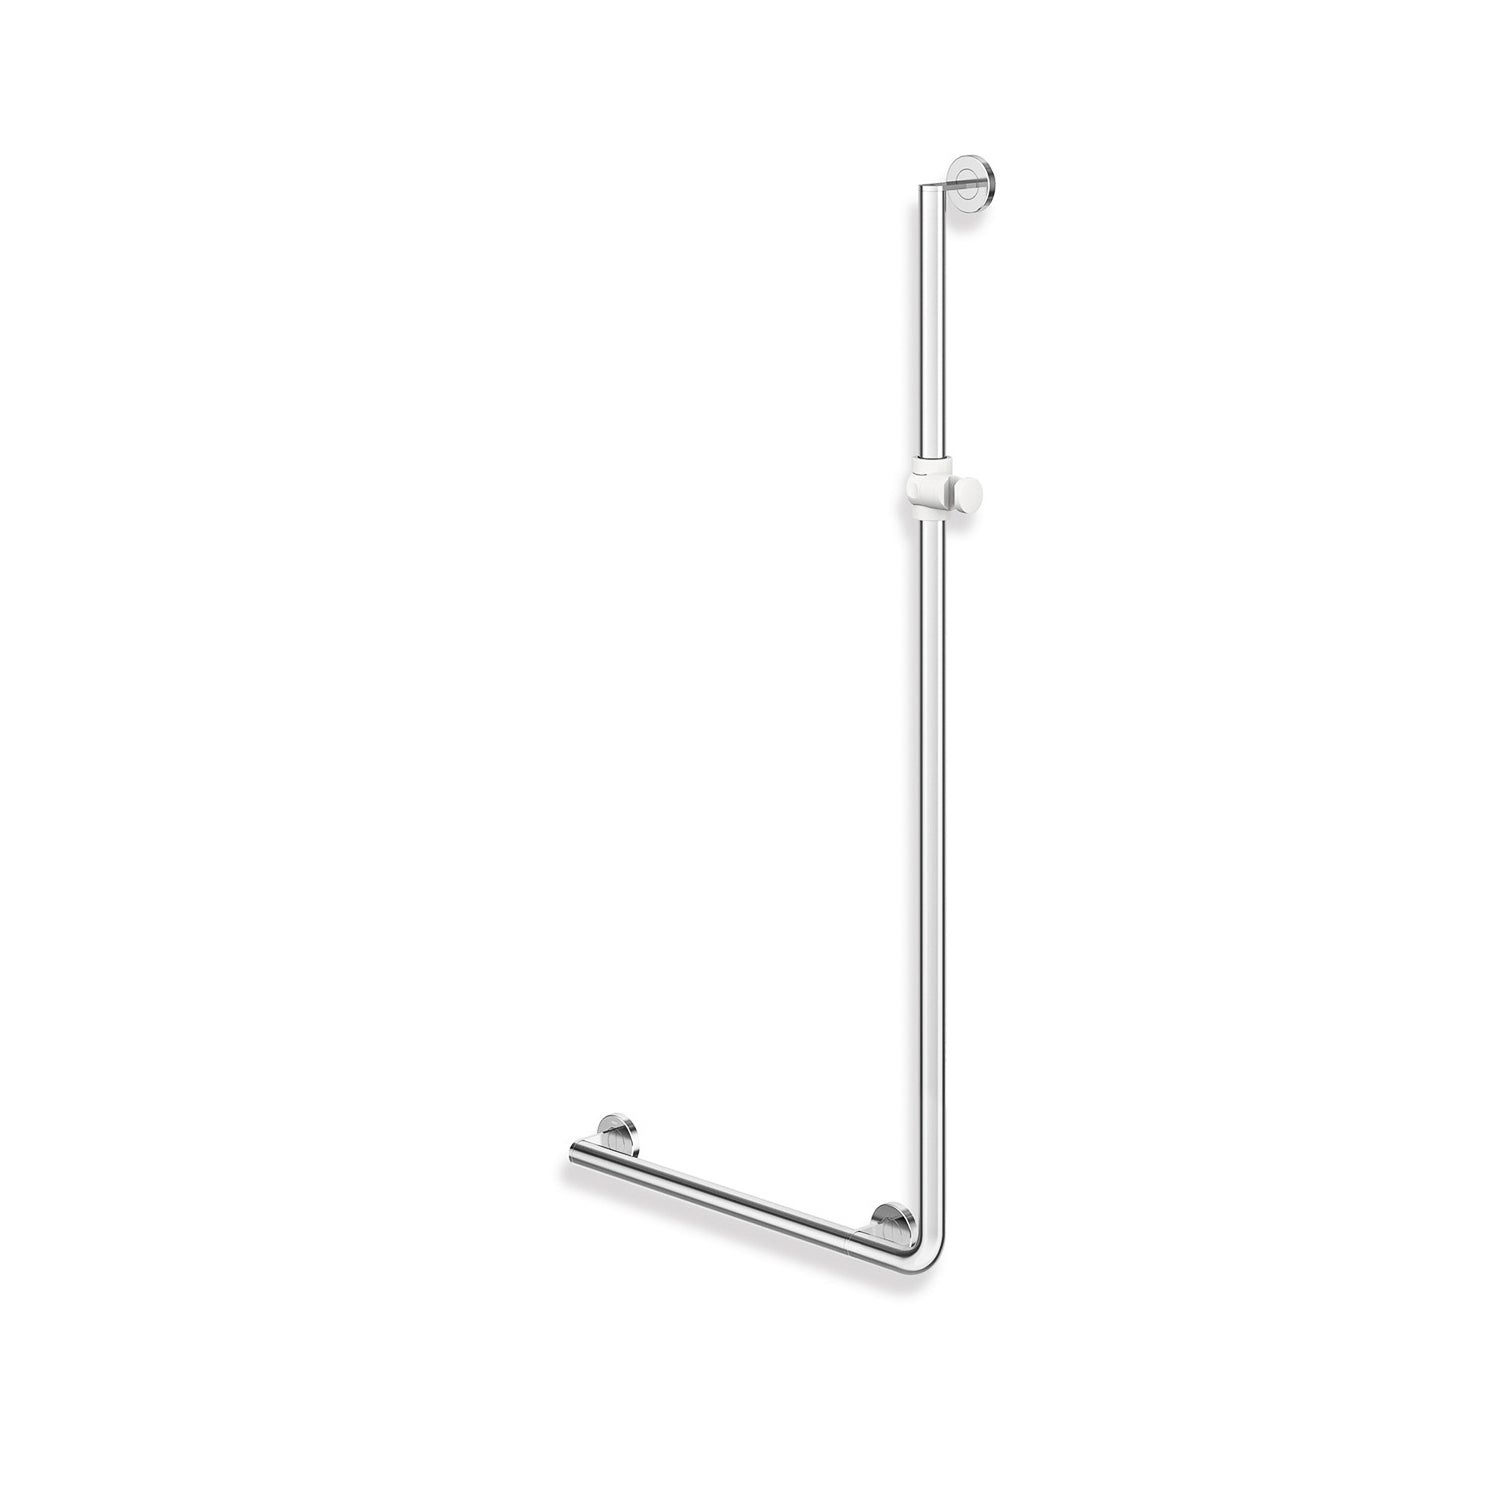 1250x600mm Left Handed Freestyle Supportive L Shaped Shower Rail with a chrome finish on a white background